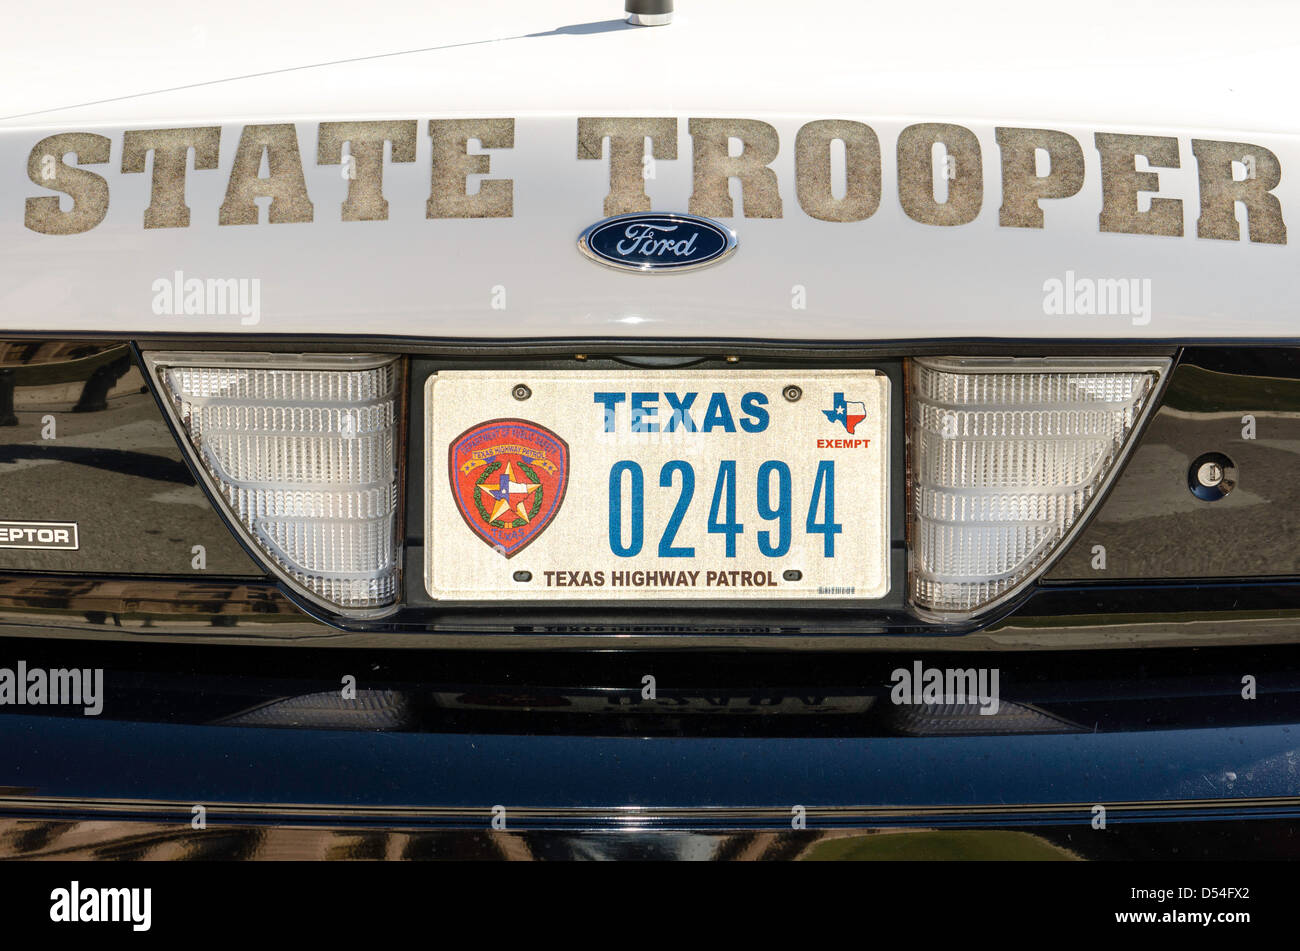 Police car plate State Trooper Capitol building in Austin Texas United States - Stock Image